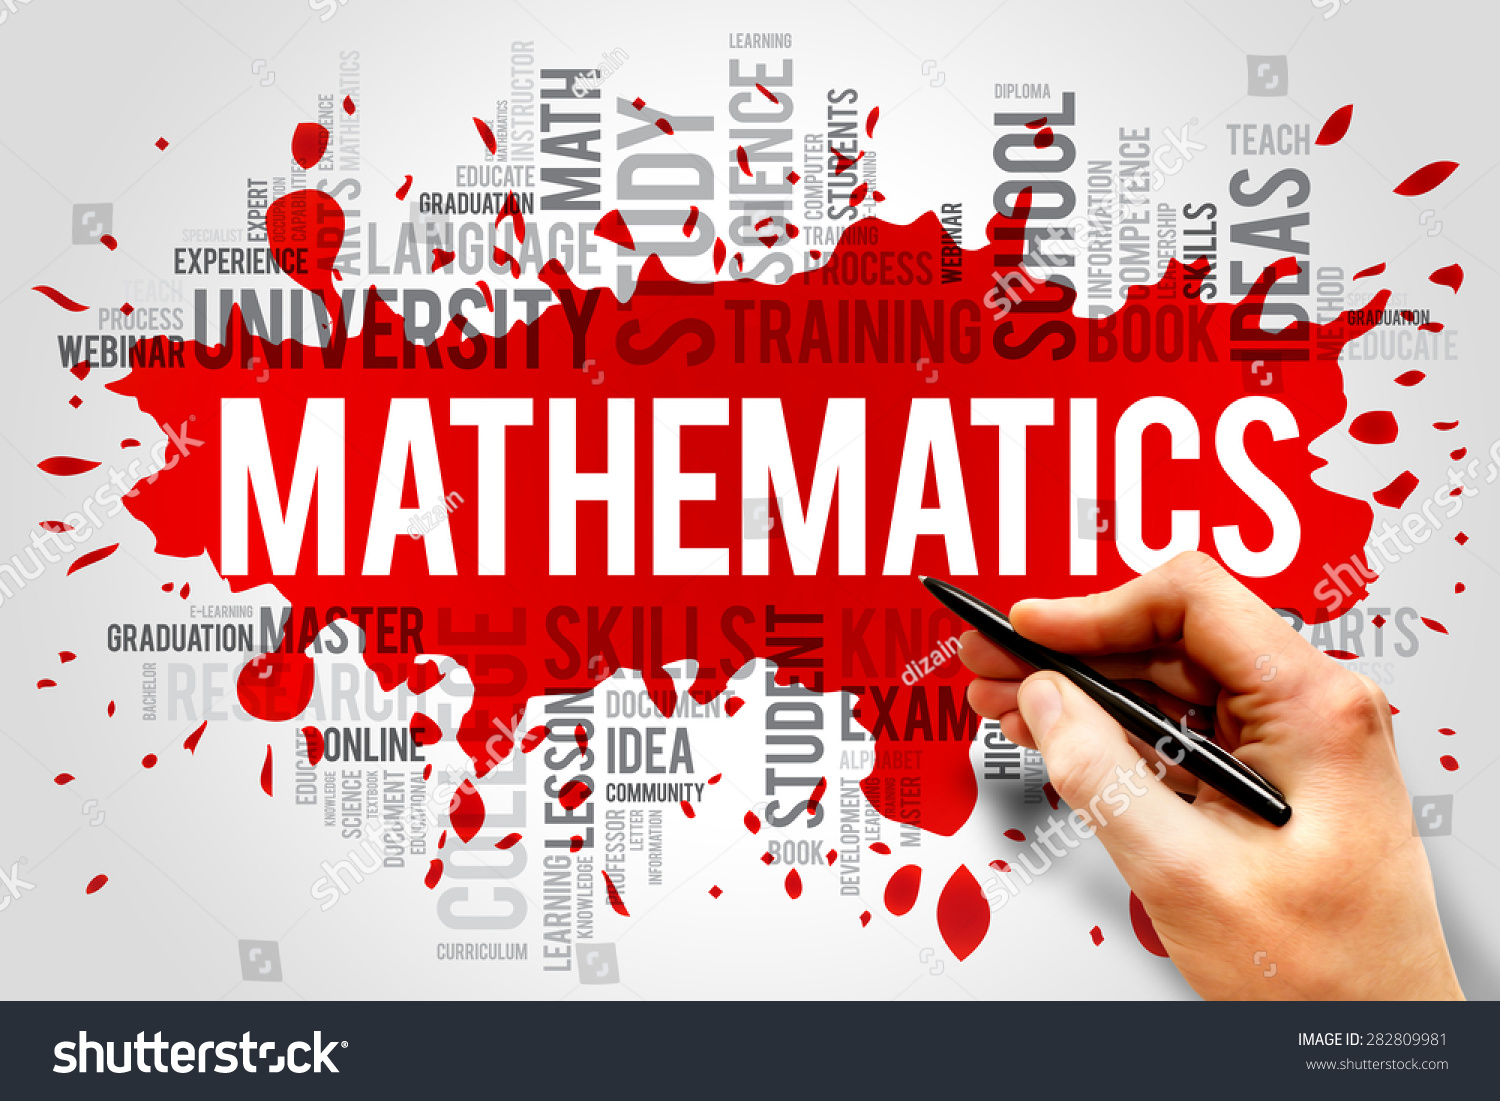 Mathematics Word Cloud Education Concept Stock Photo 282809981 ...